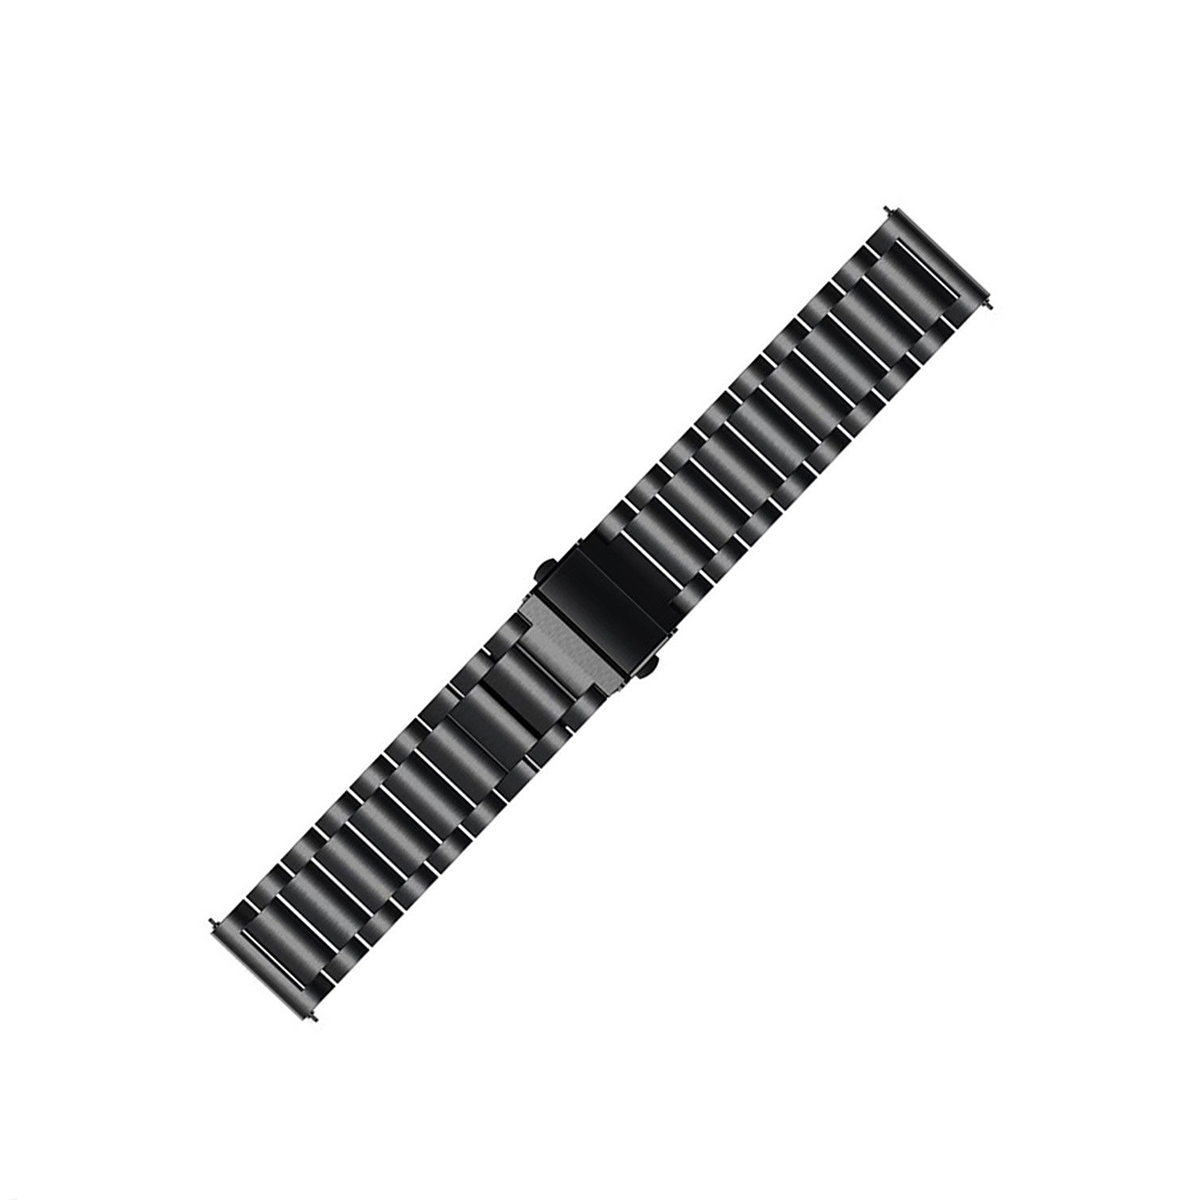 22mm Stainless Steel Watch Band Replacement For Samsung Galaxy Watch 46mm